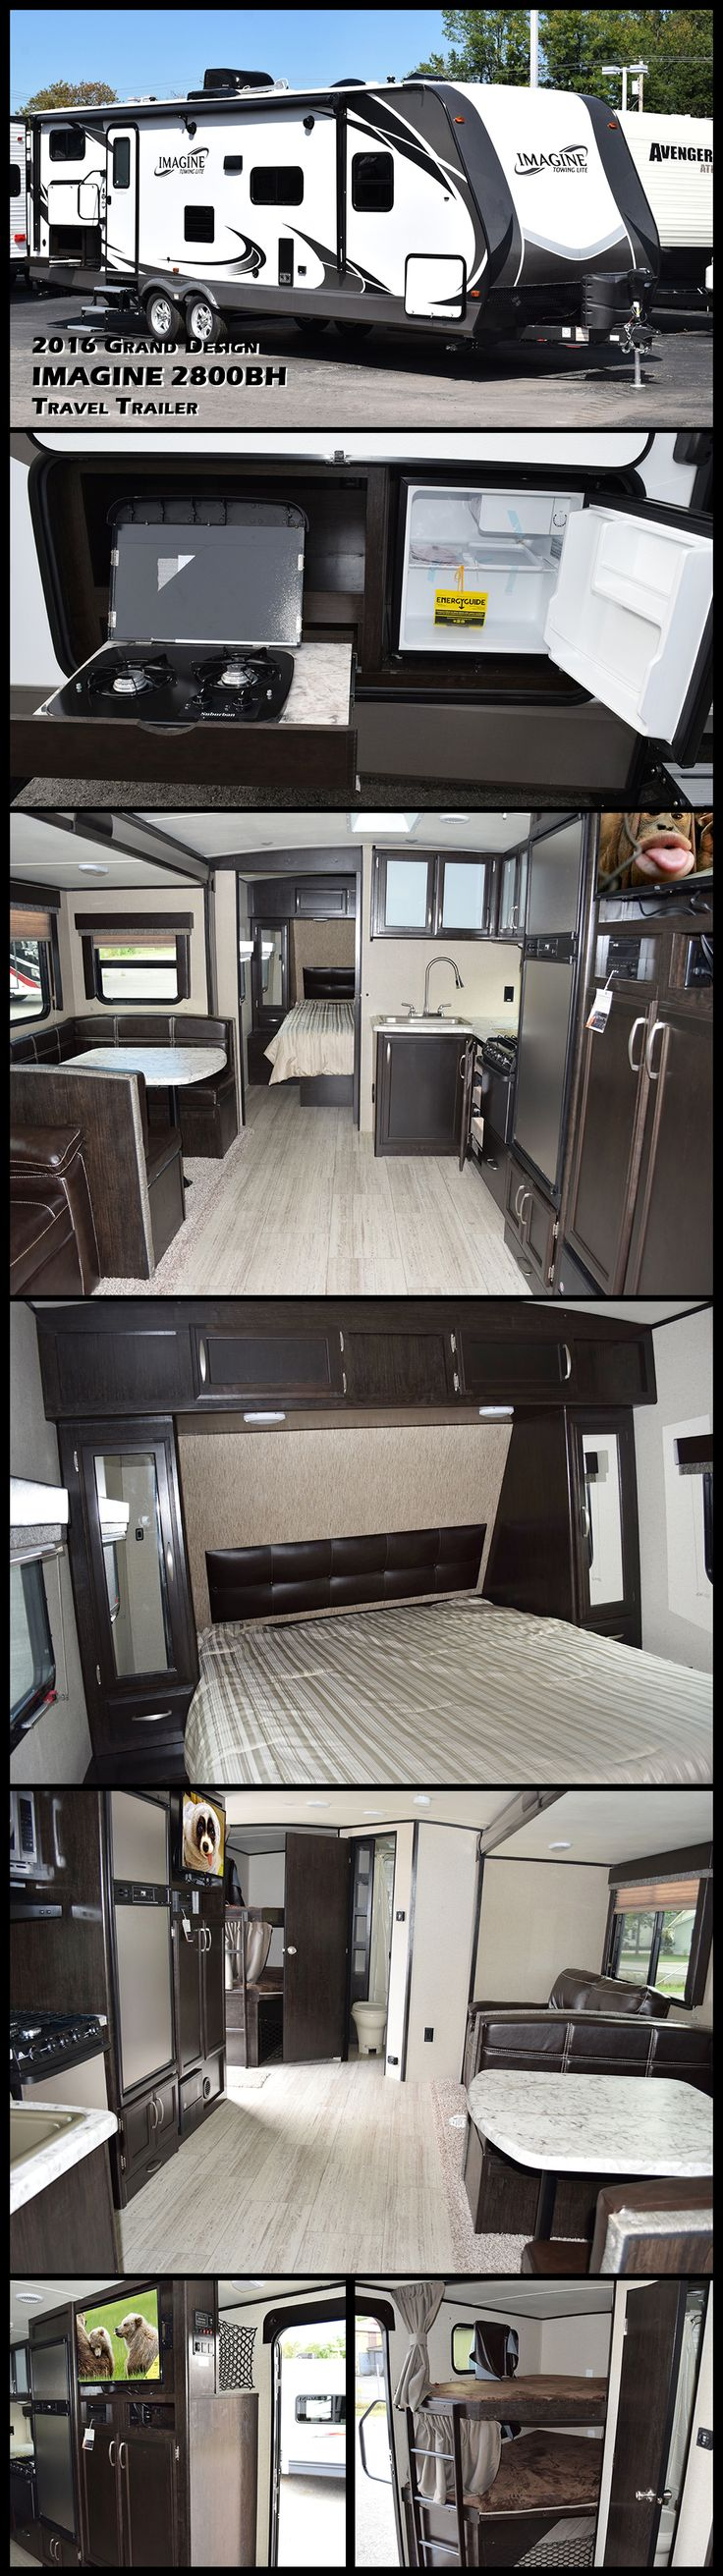 The Imagine Lightweight 2800BH Travel Trailer is the latest introduction from Grand Design. With floorplans starting well under 6,000-pounds, Imagine travel trailers hit the towing sweet spot of today's medium duty trucks and SUV's.